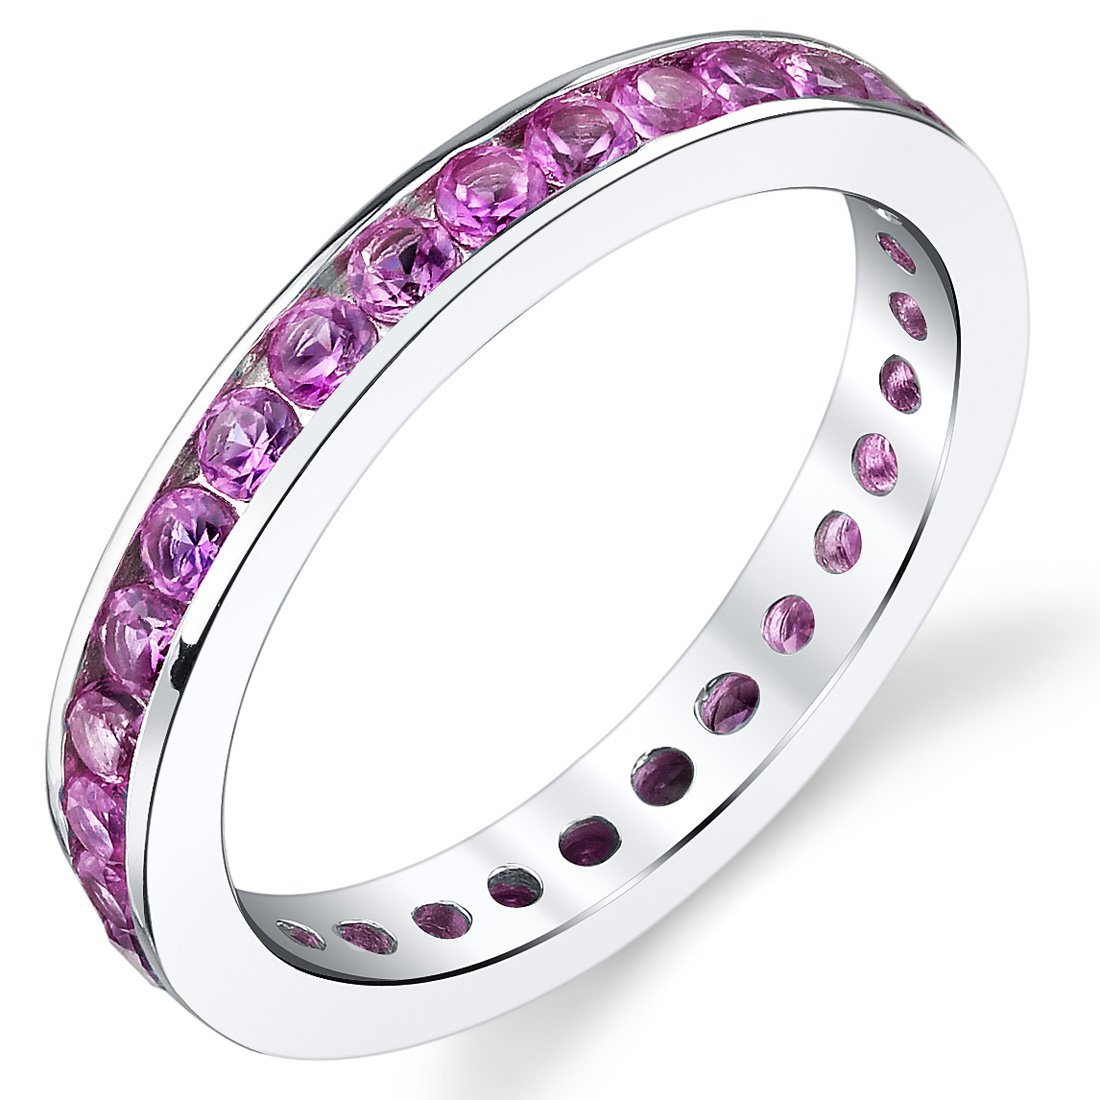 1.50 Carats Created Pink Sapphire Eternity Ring Sterling Silver Size 7